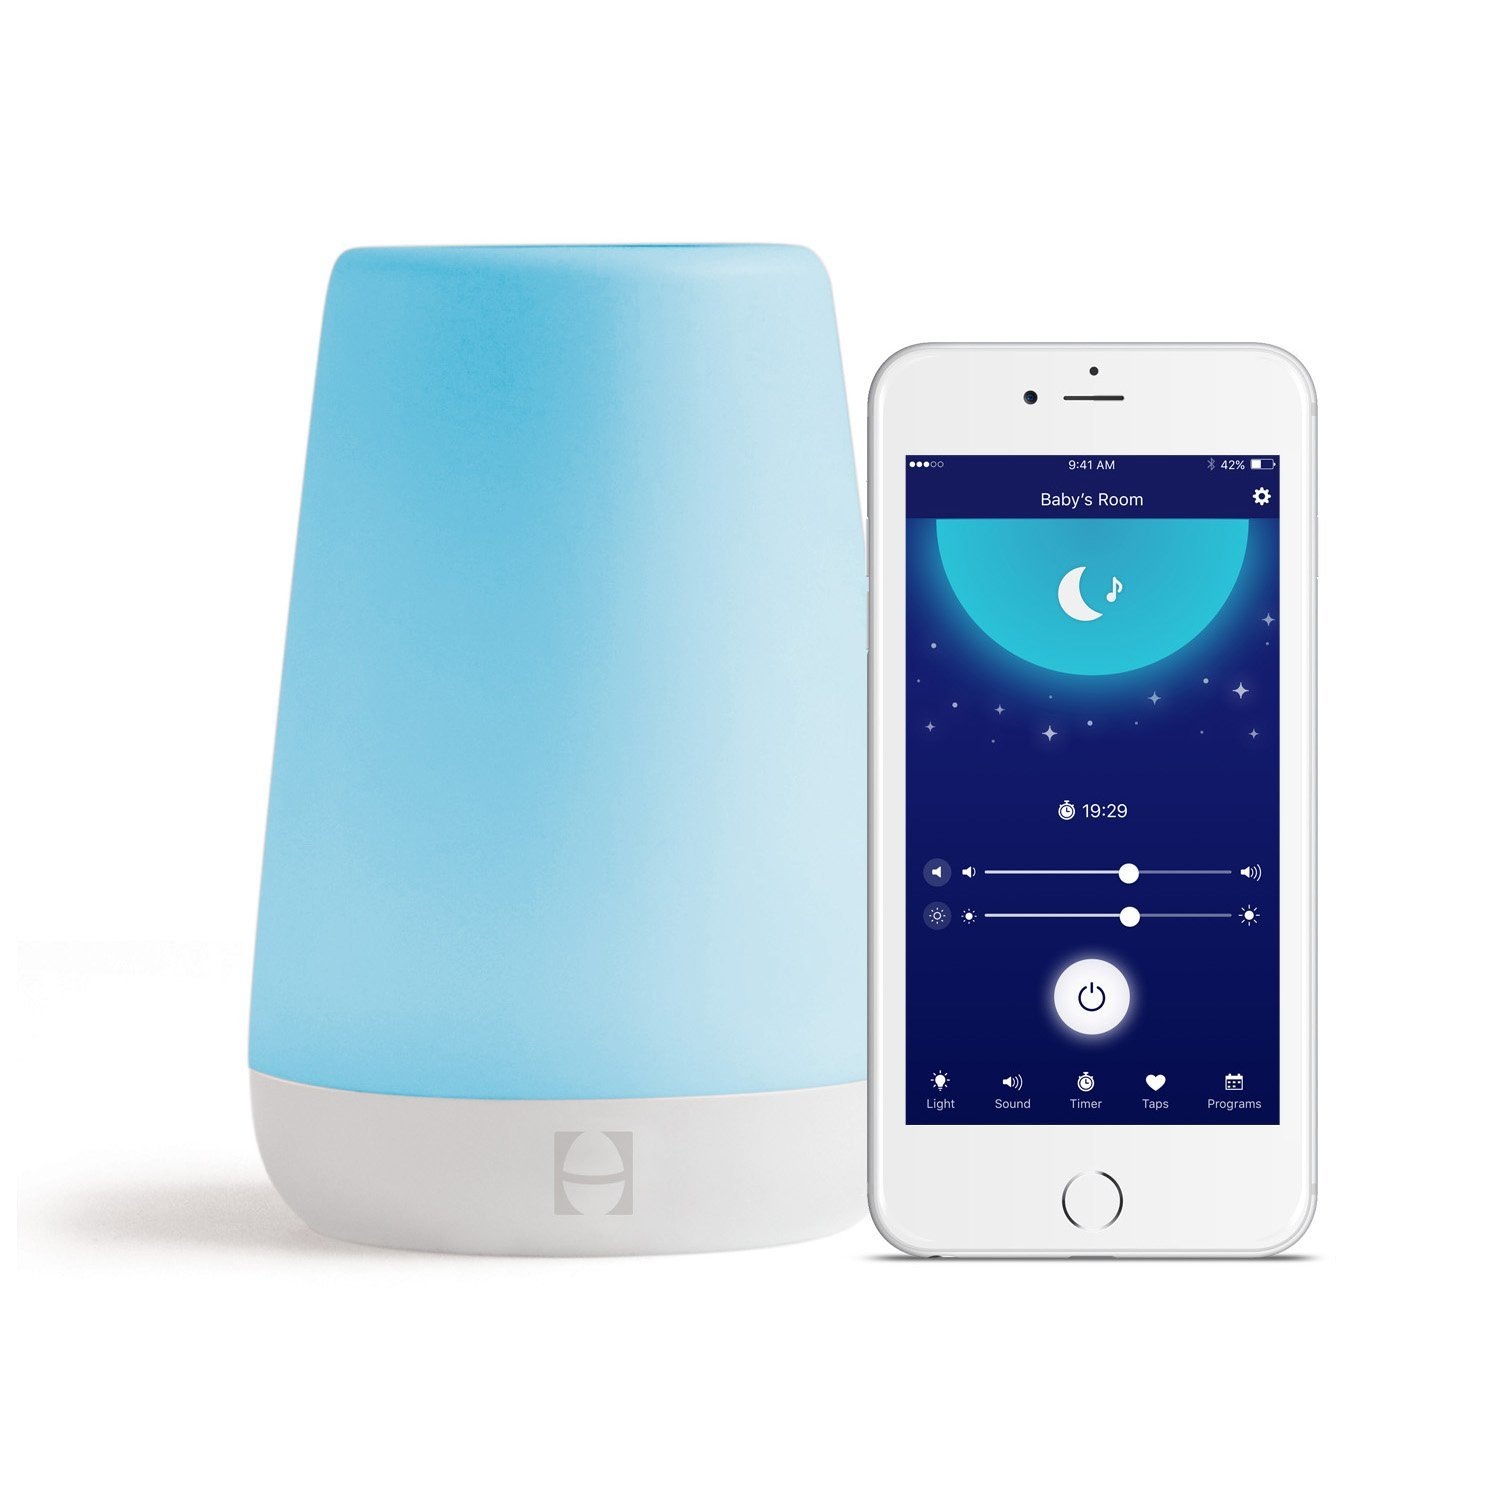 Hatch Baby Rest Smart Night Light